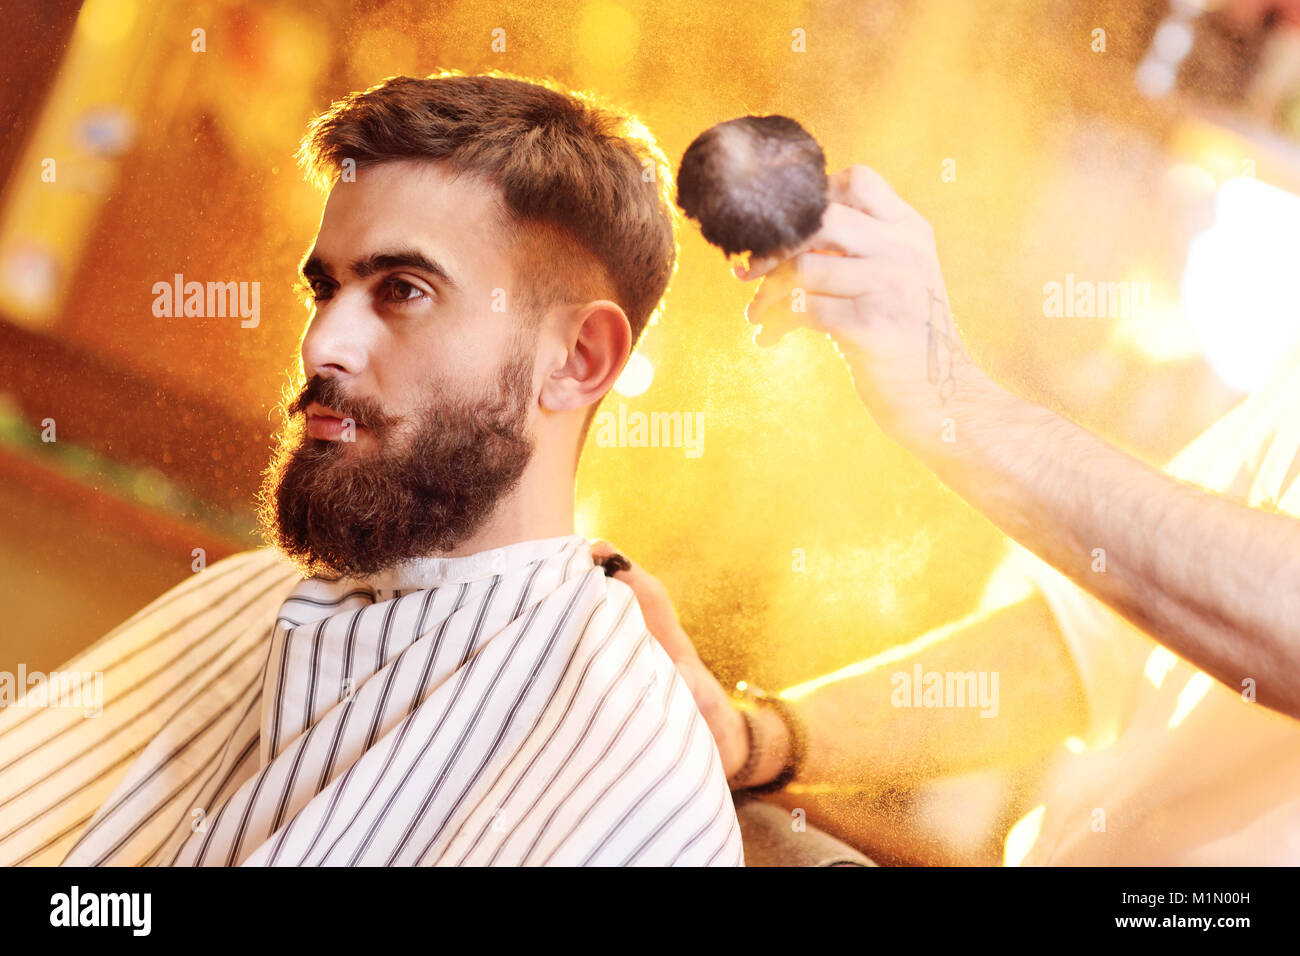 barber does a haircut for a young handsome man with a beard and mustache  - Stock Image